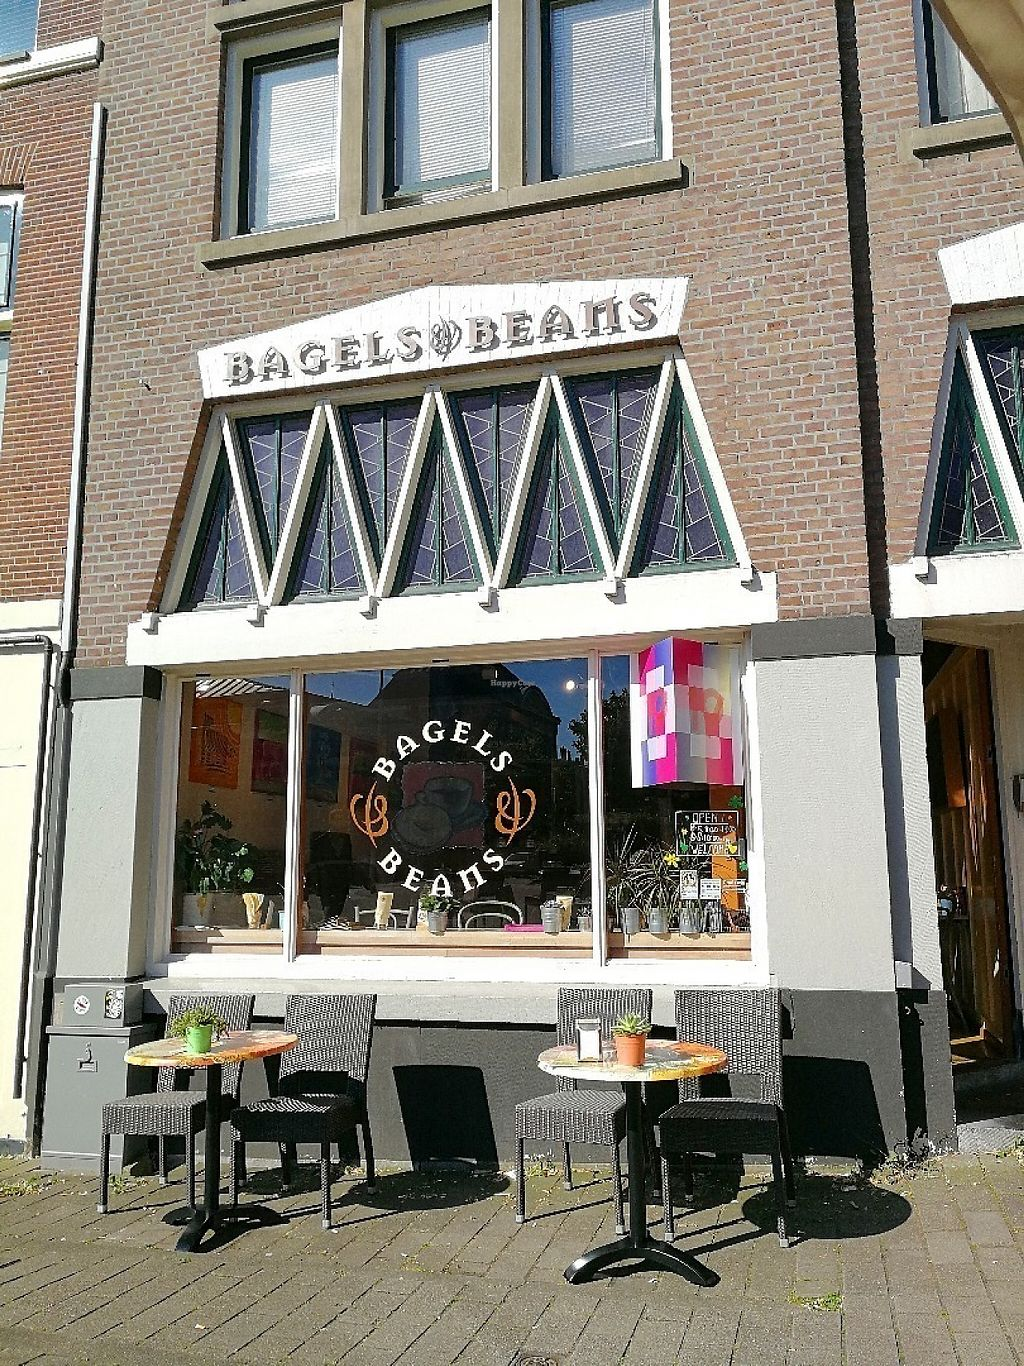 """Photo of Bagels & Beans - Piet Heinplein  by <a href=""""/members/profile/Gudrun"""">Gudrun</a> <br/>Bagels and Beans <br/> May 30, 2017  - <a href='/contact/abuse/image/50267/264241'>Report</a>"""